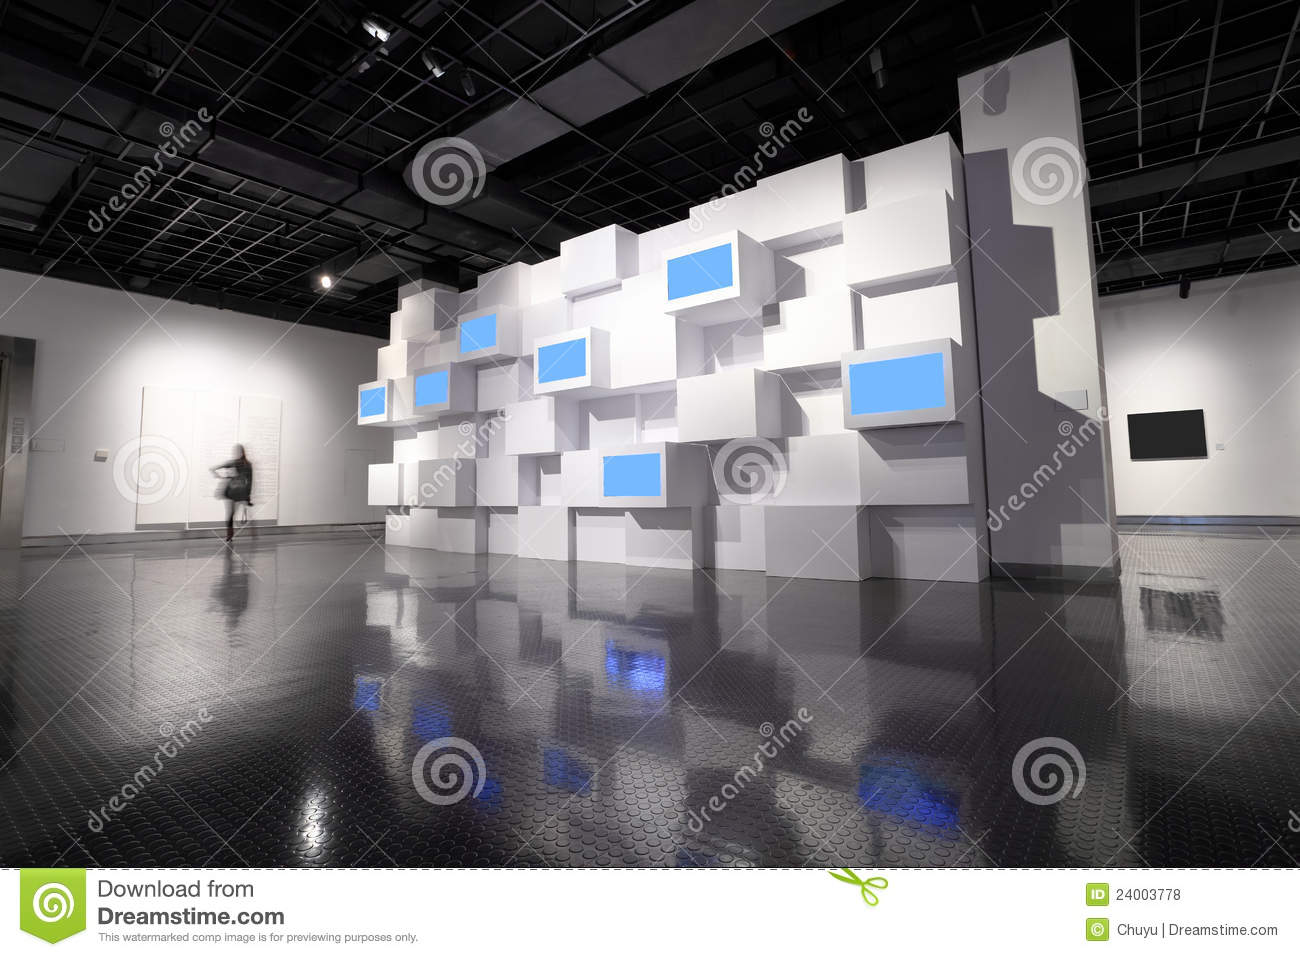 Available at: http://thumbs.dreamstime.com/z/video-wall-exhibition ...